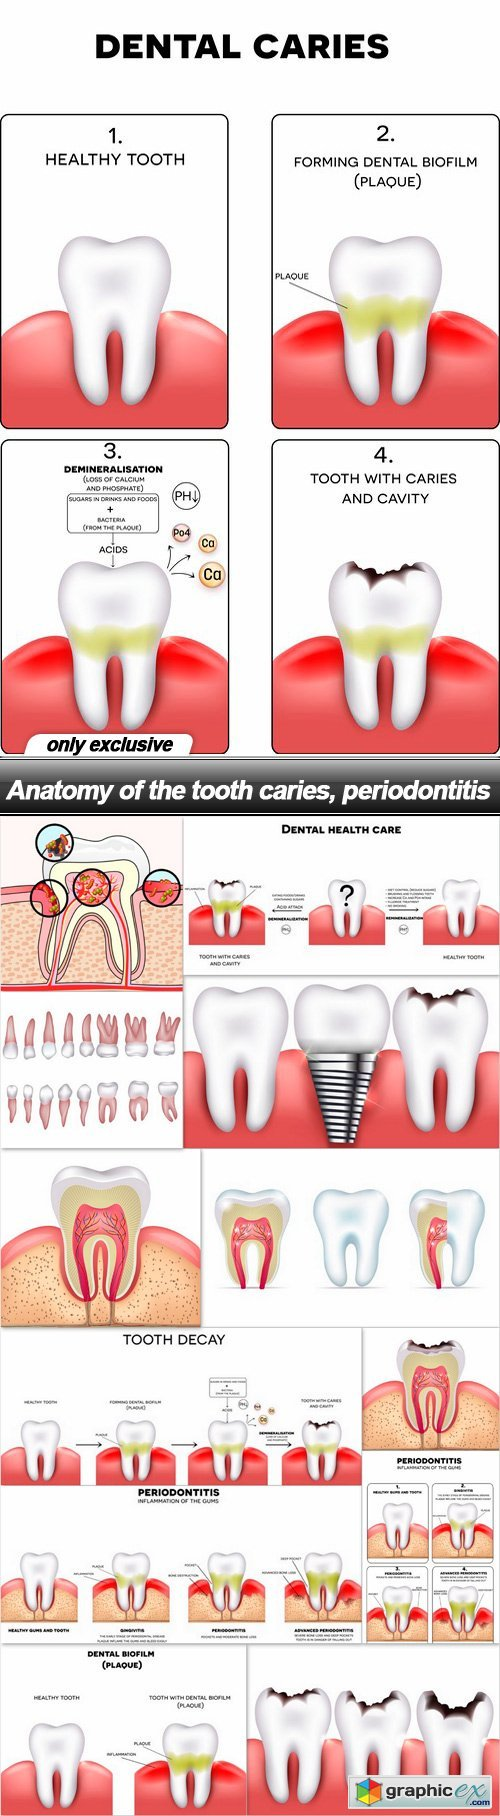 Anatomy of the tooth caries, periodontitis - 13 EPS